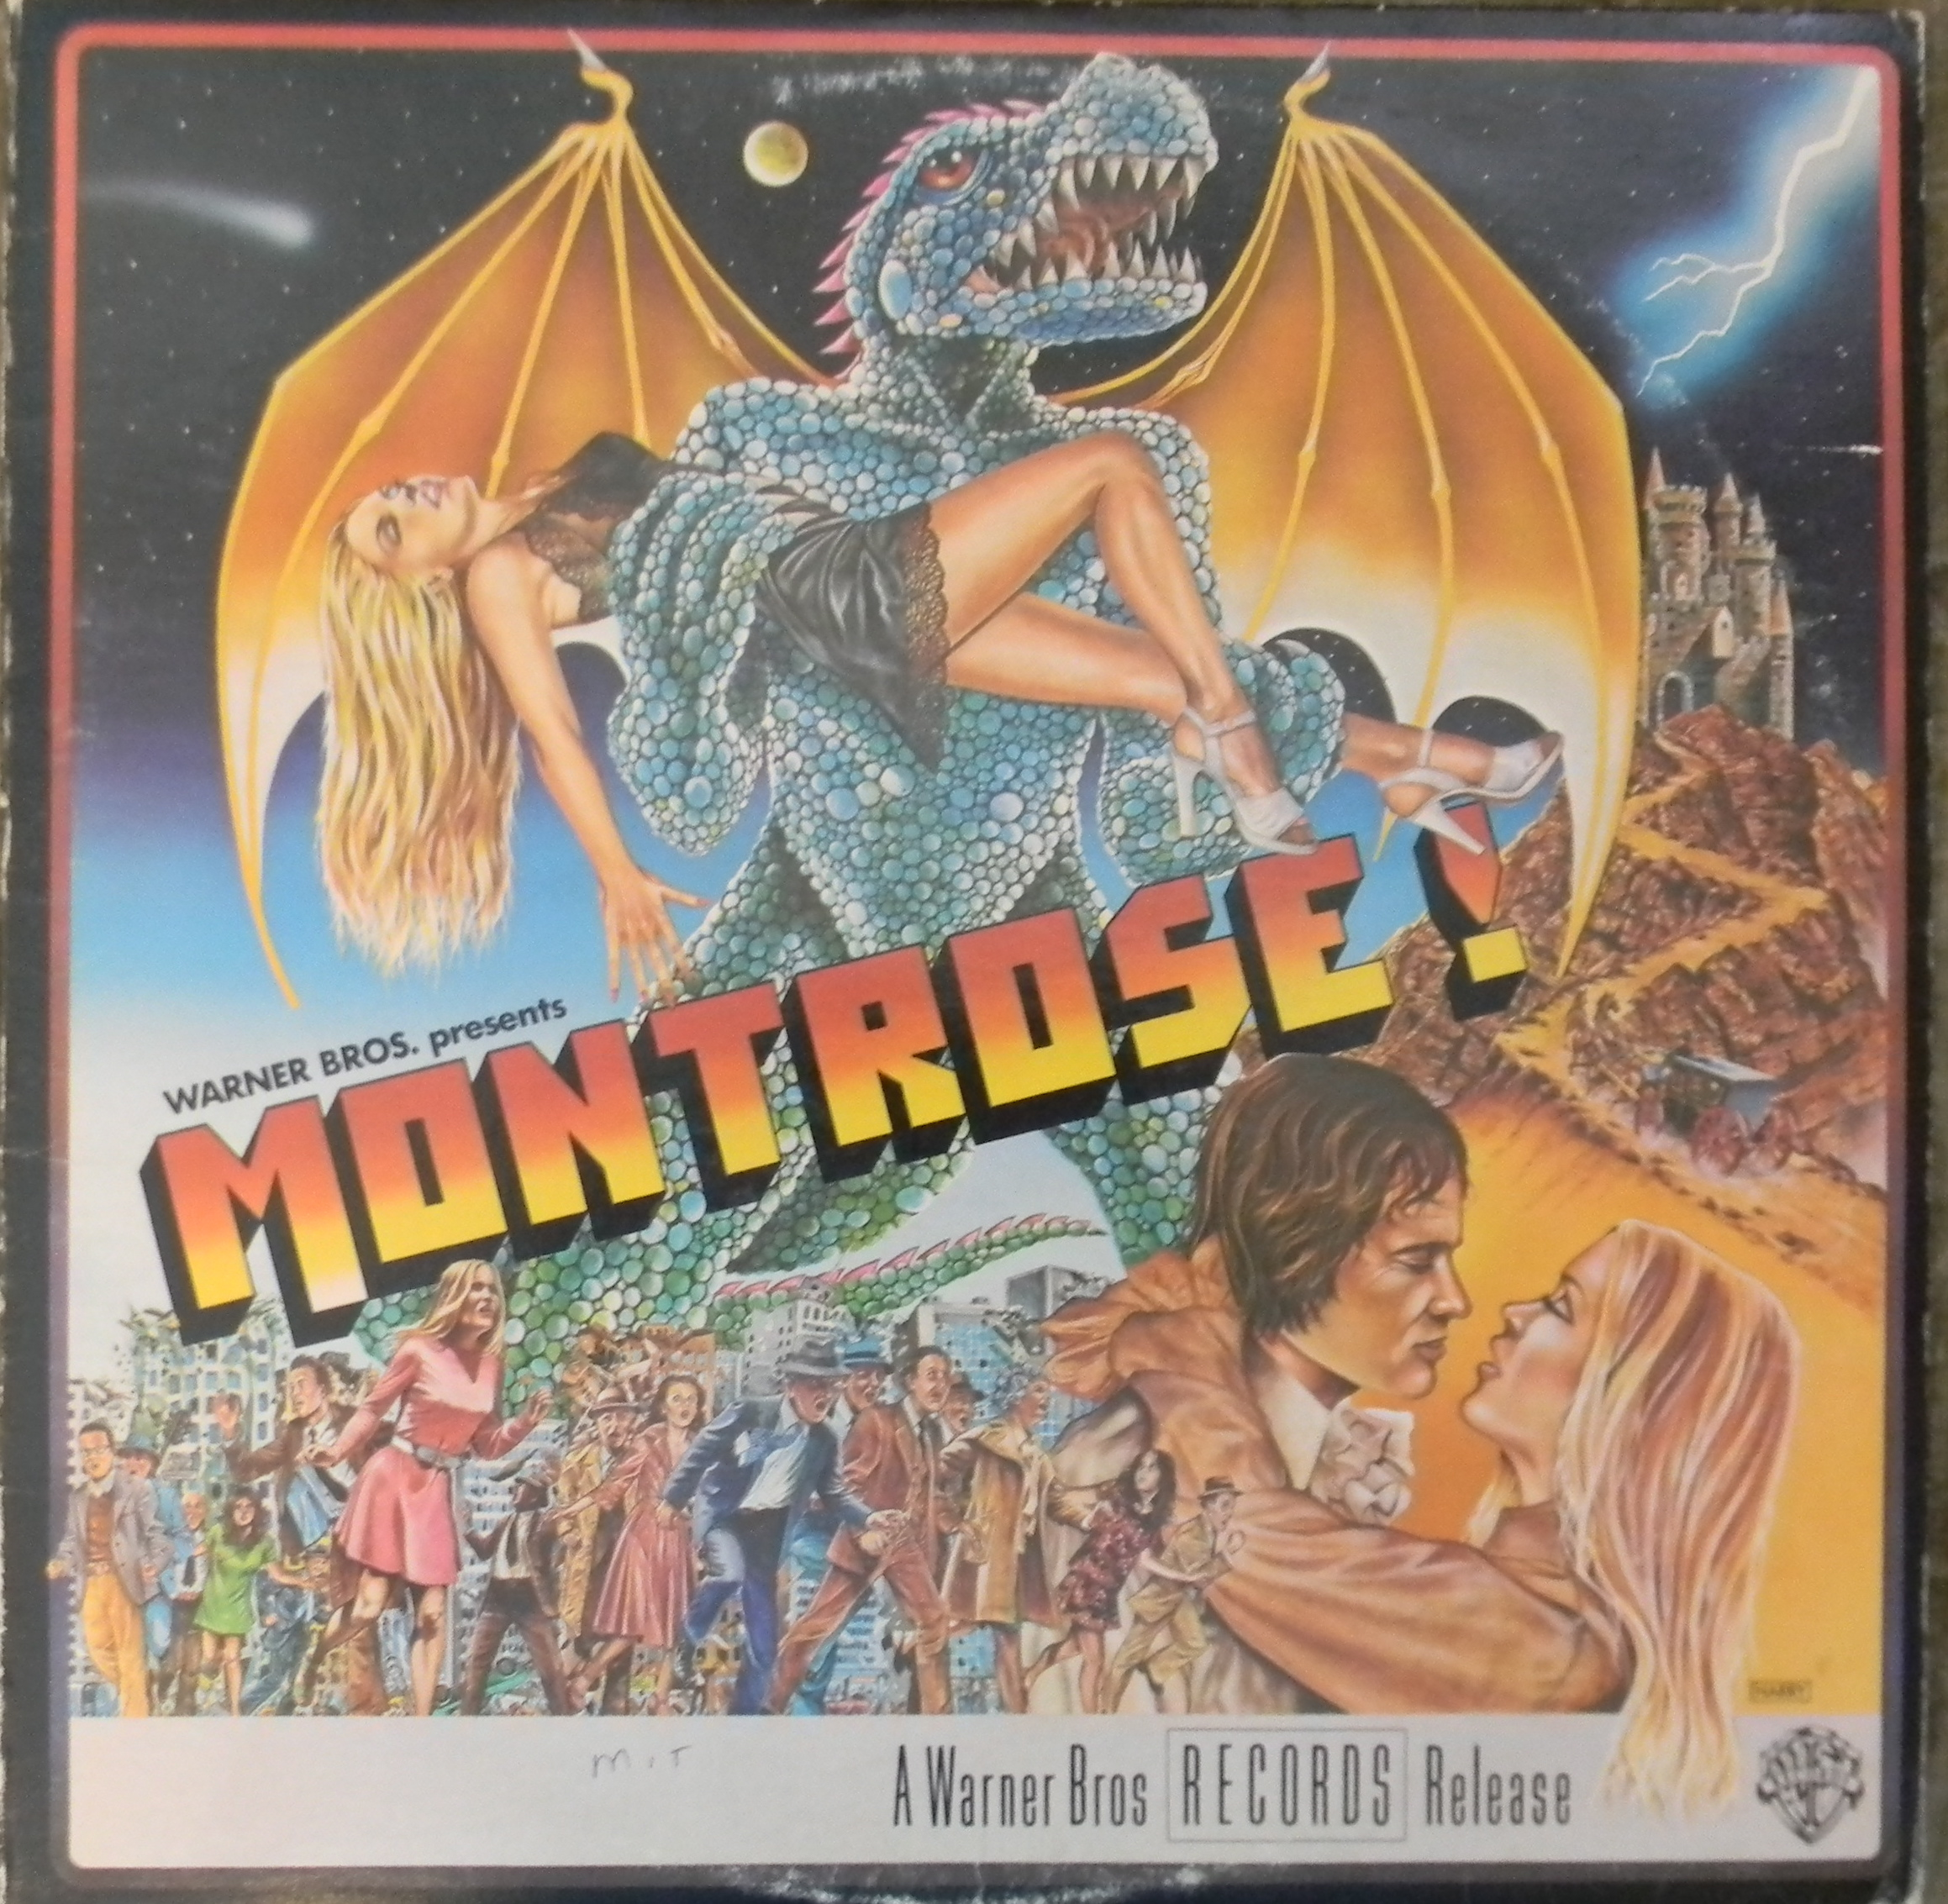 Hymies Vintage Records · Dragons on album covers